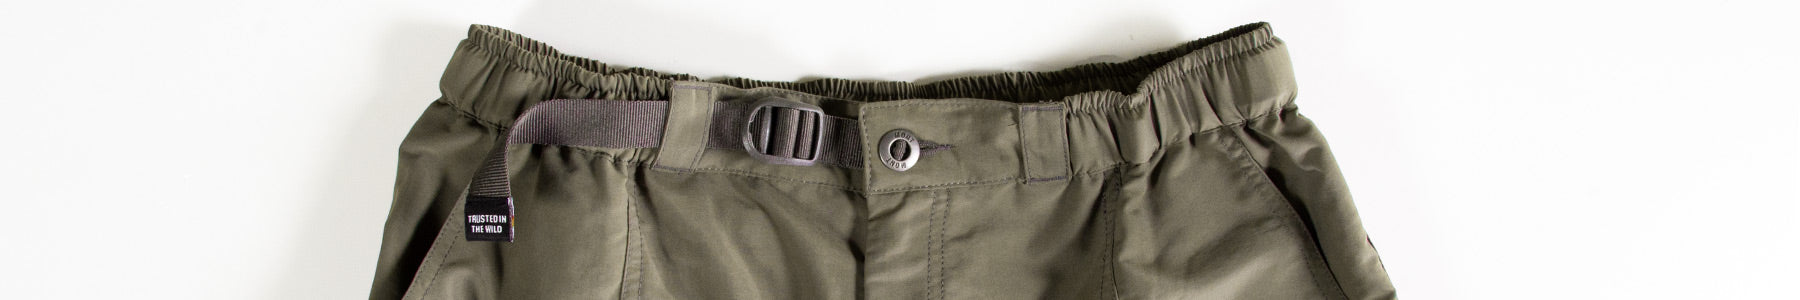 Adventure Light Shorts & Pants